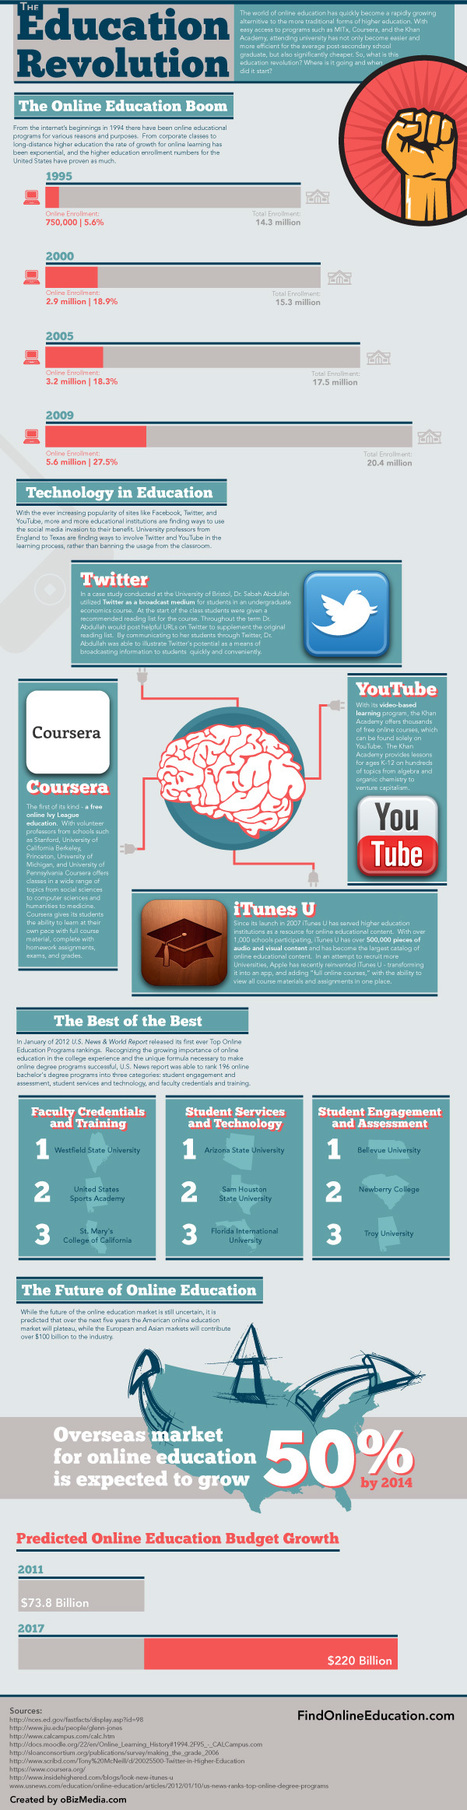 Online Higher Education Revolution (Infographic) - Business 2 Community | Distance and Virtual Learning | Scoop.it